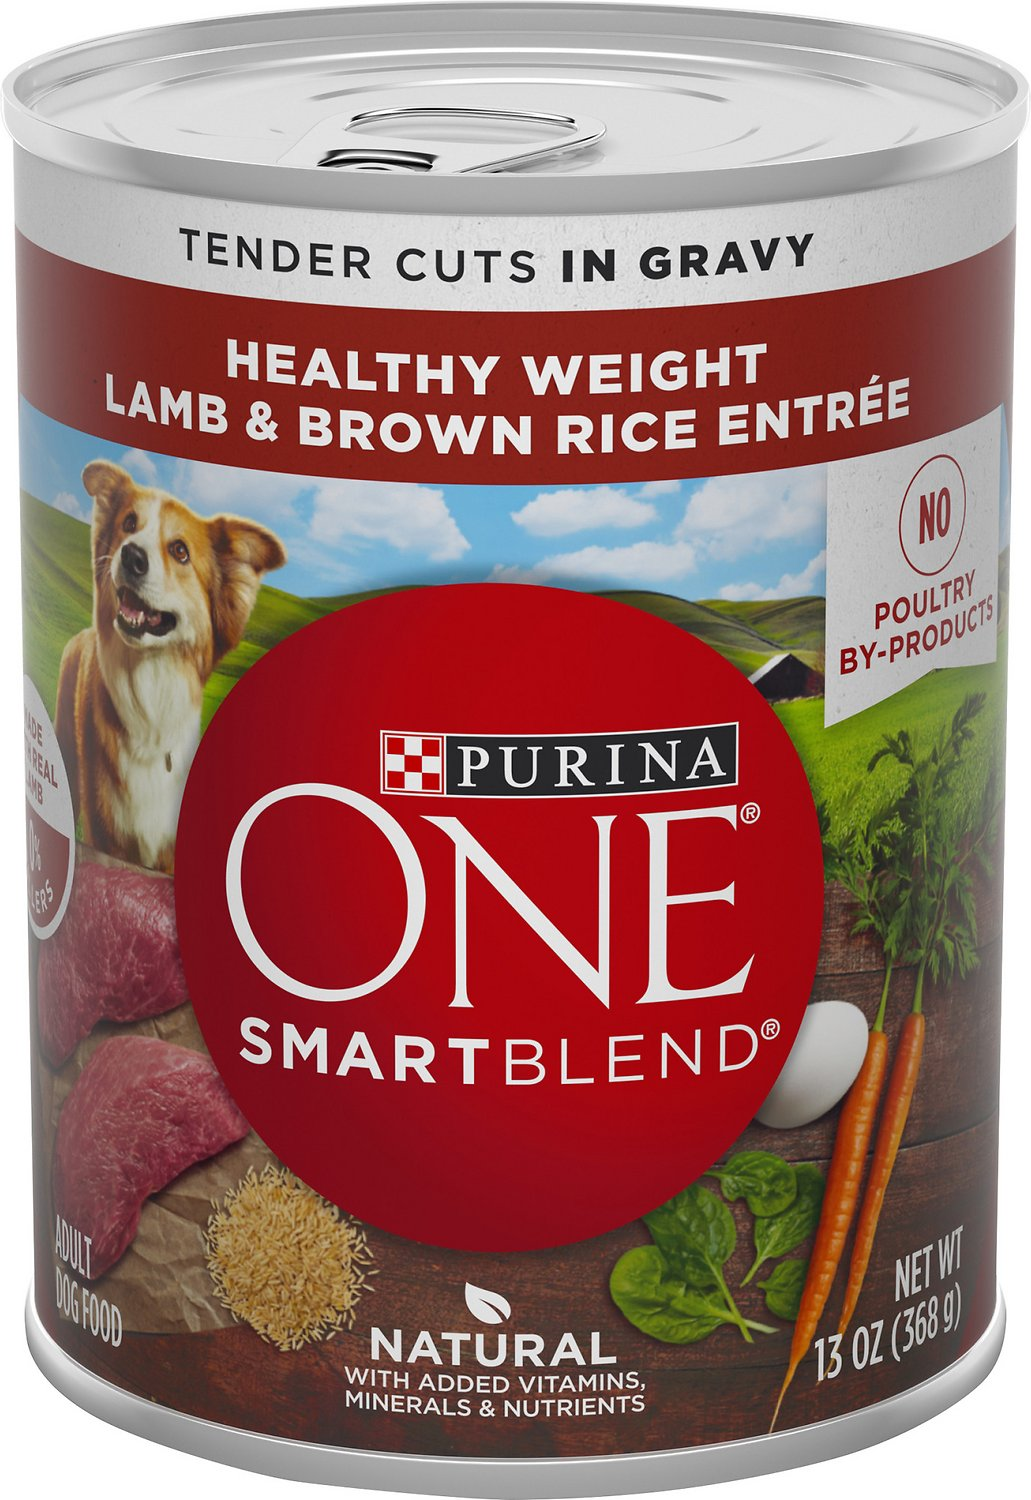 Purina One Smartblend Tender Cuts In Gravy Lamb Brown Rice Entree